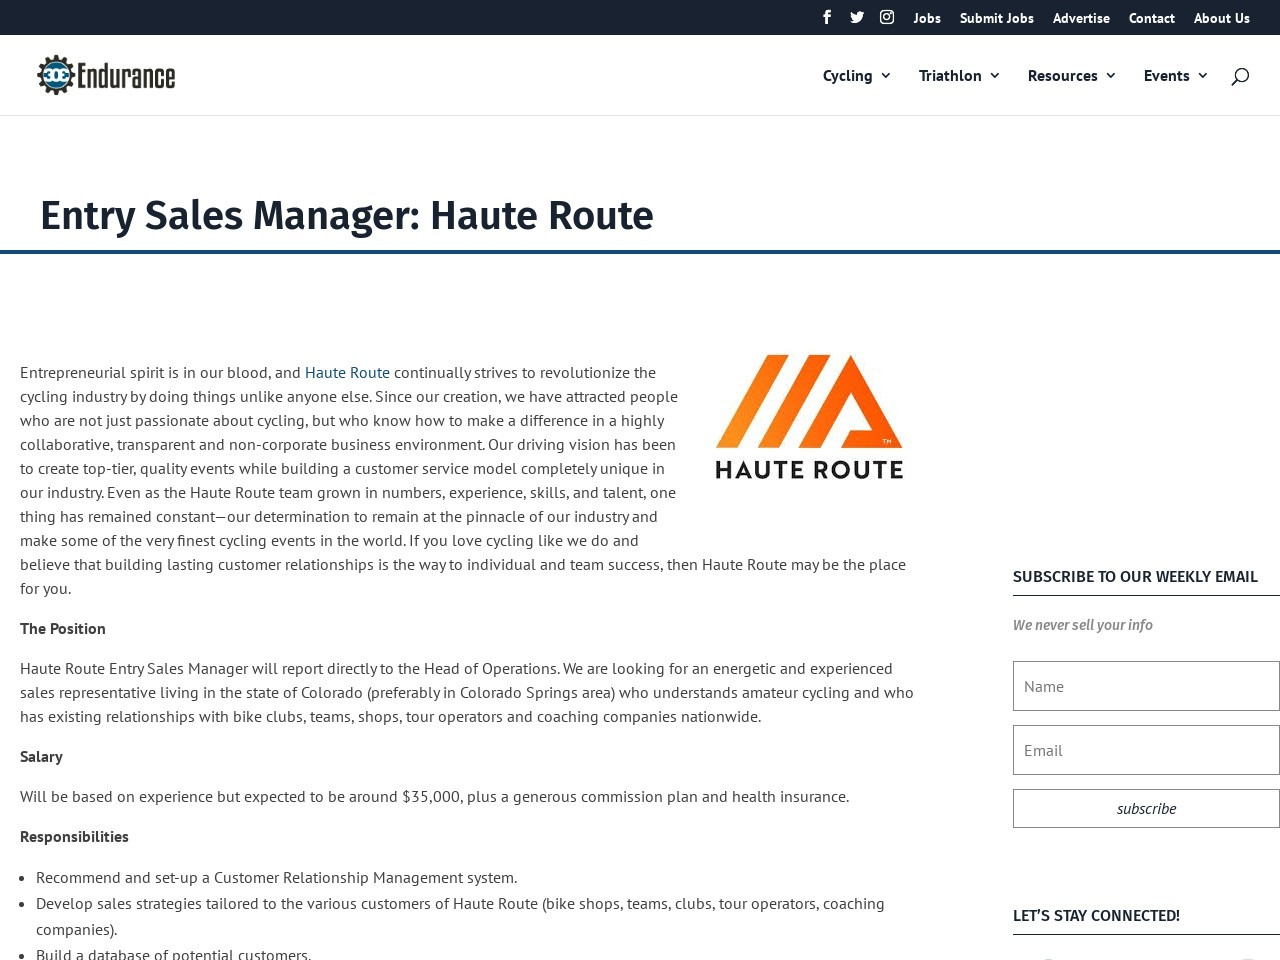 Entry Sales Manager: Haute Route